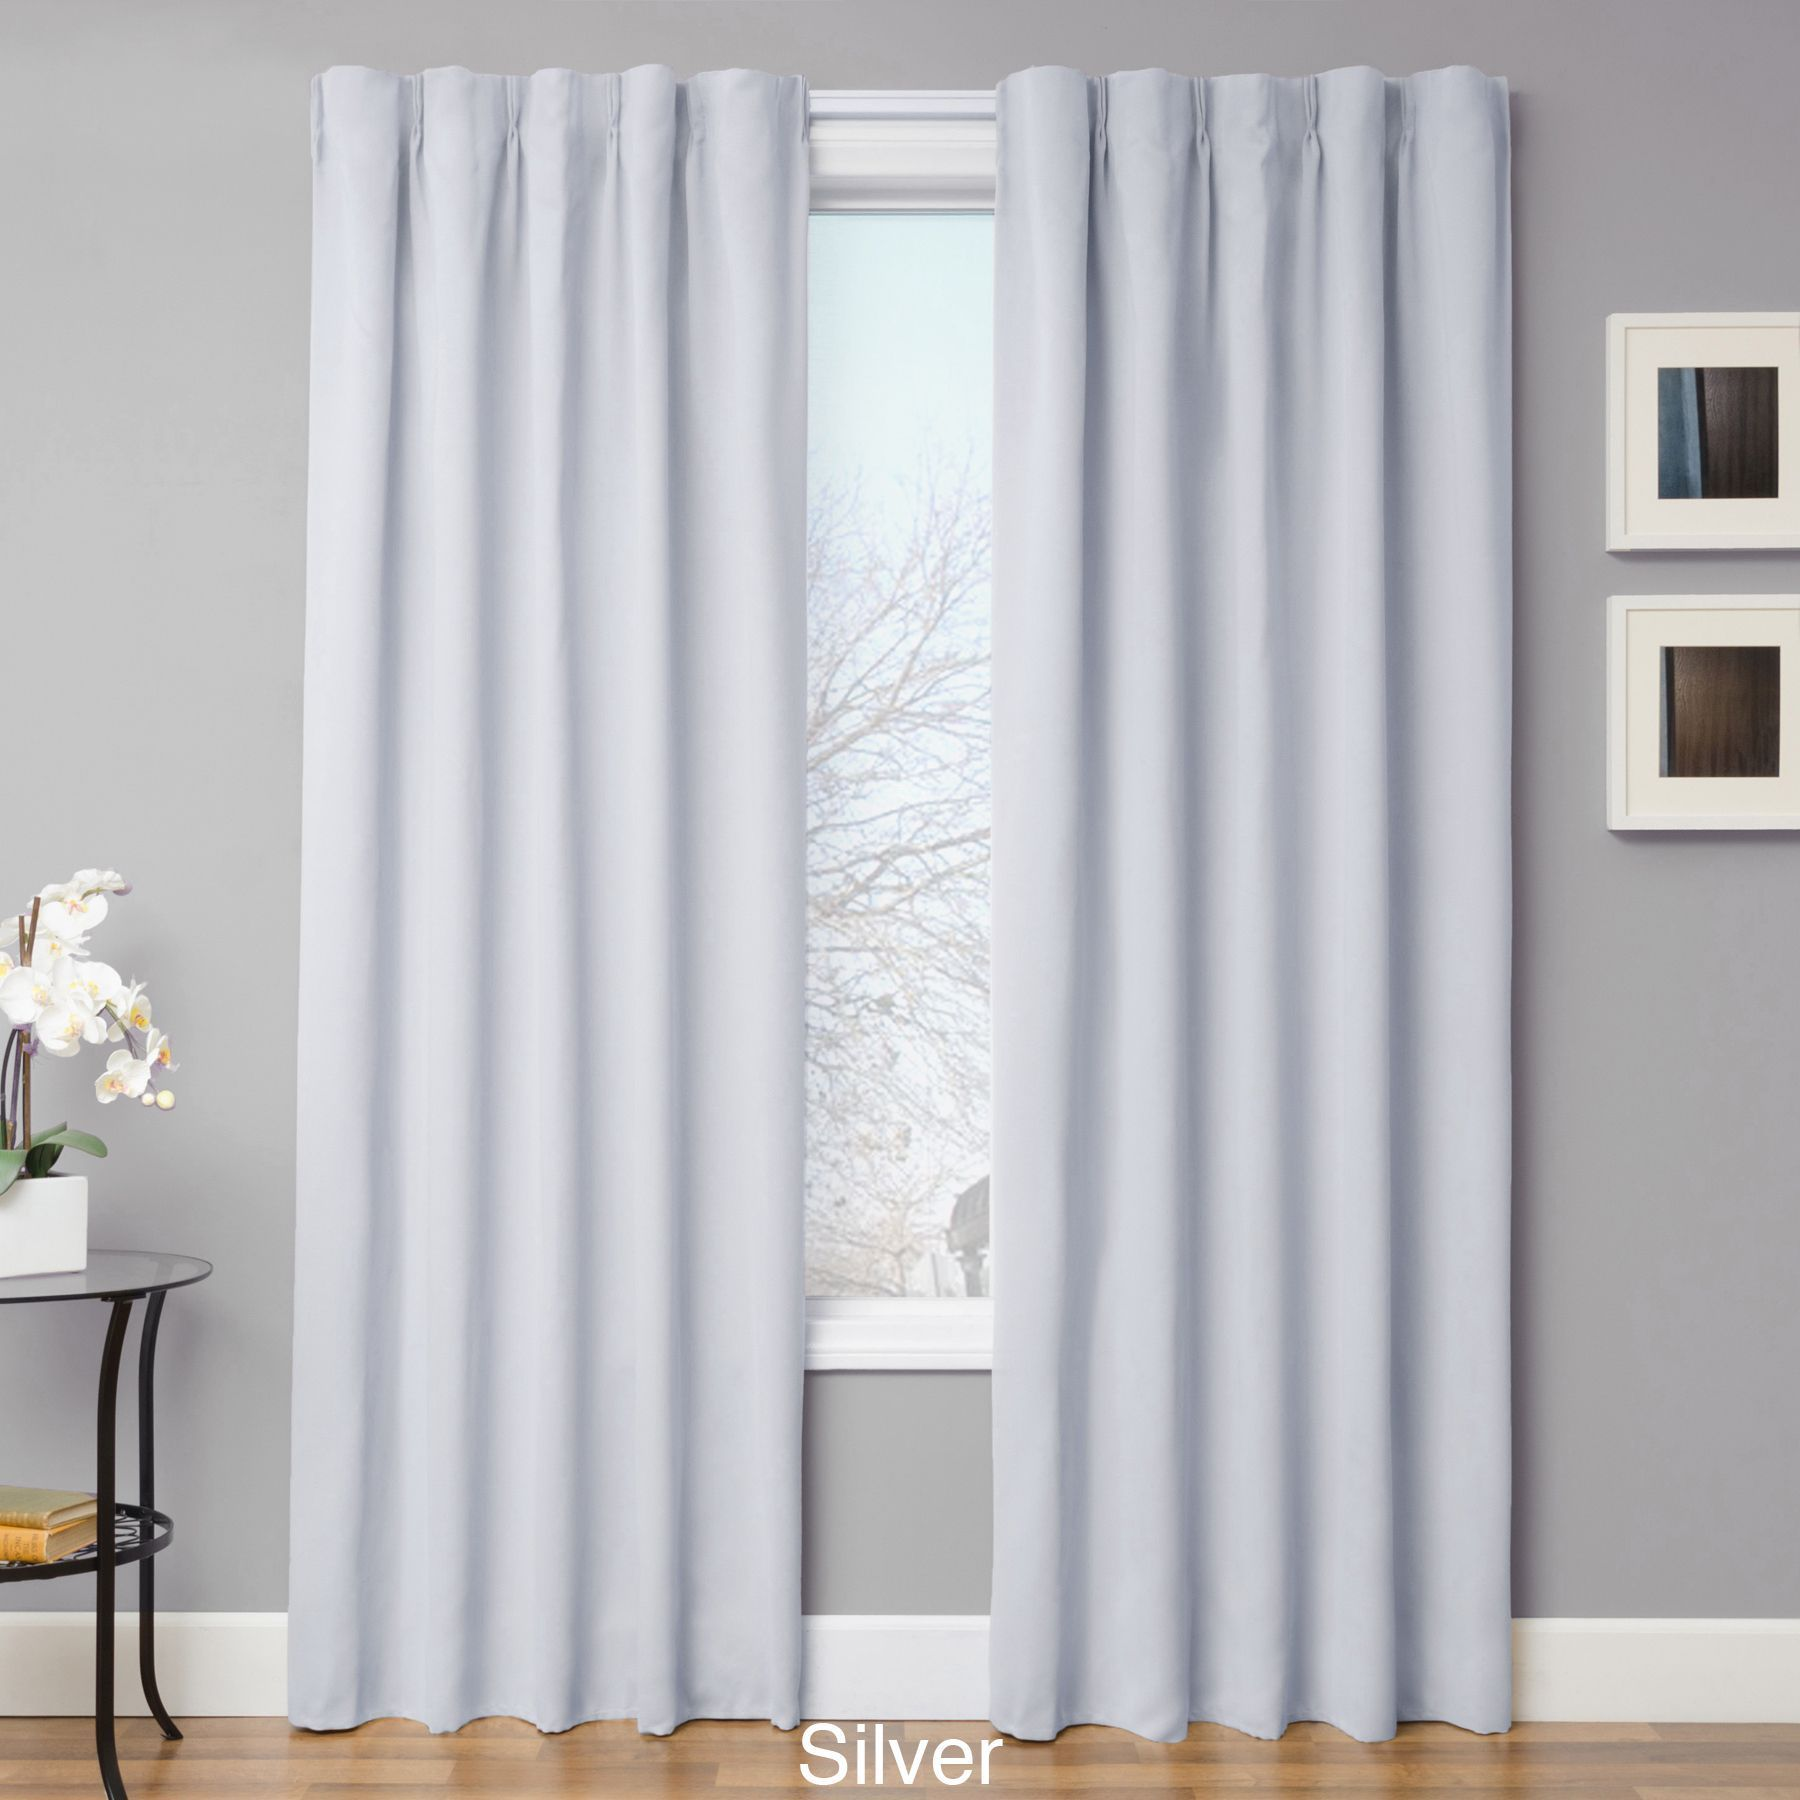 Window coverings for 2 story windows  instantly update your home decor with new window panels simple